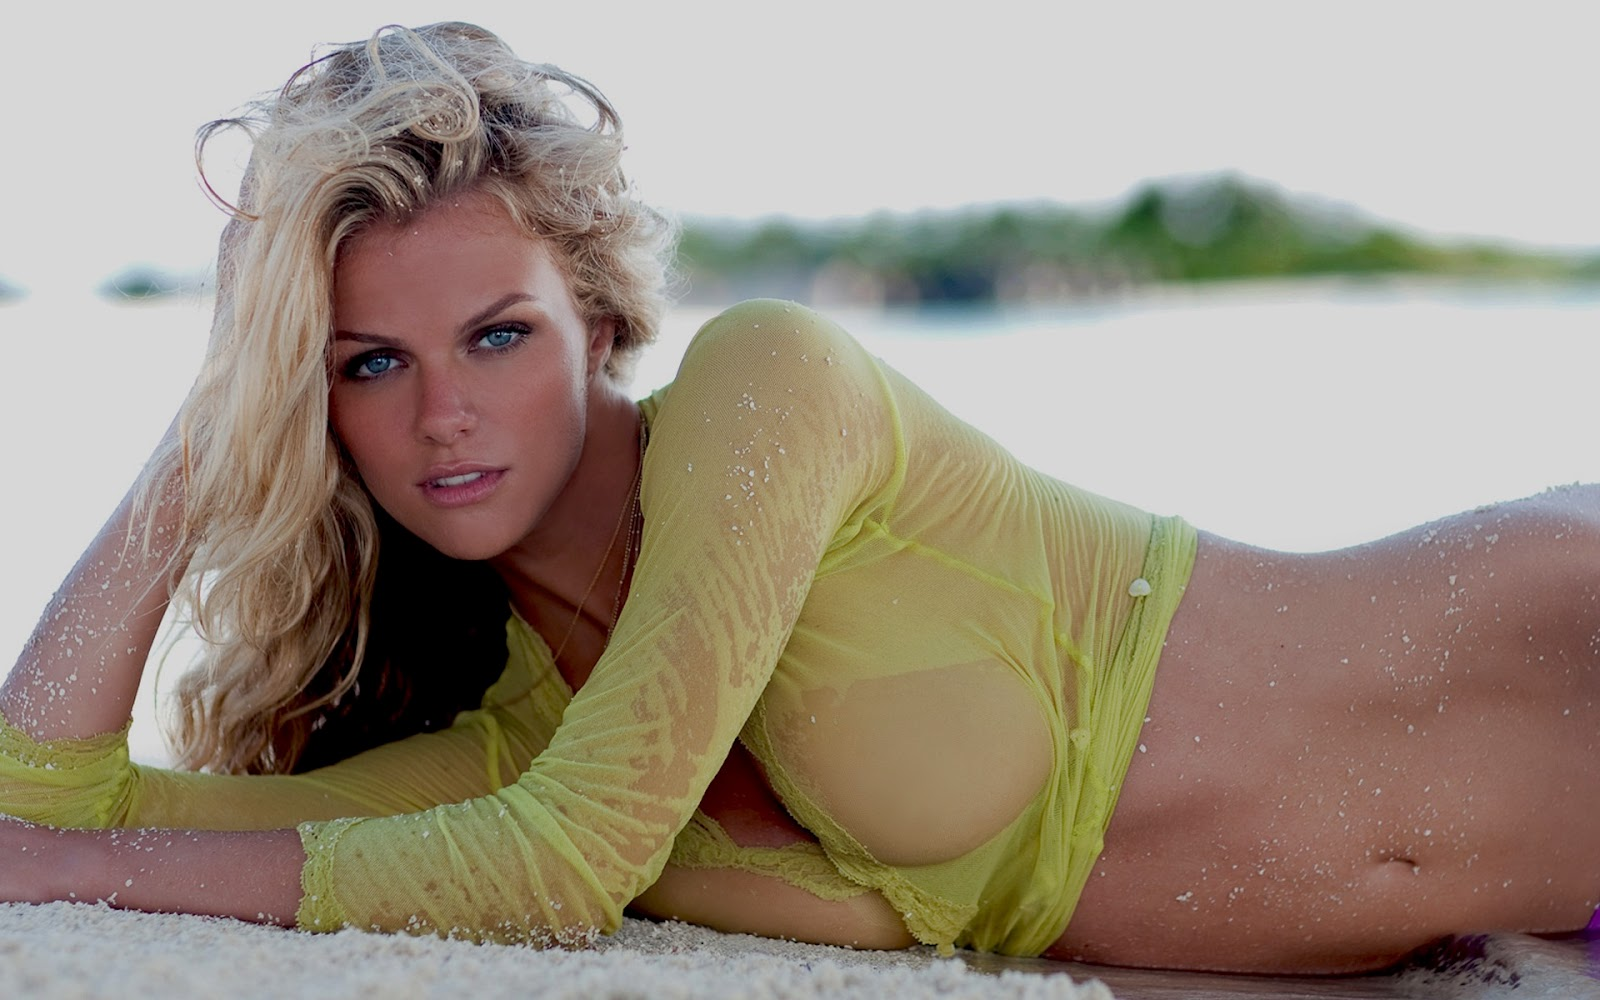 http://1.bp.blogspot.com/-47m_dFg3Pz4/T7iRzhRQ2mI/AAAAAAAAAGc/89SW-7Meaws/s1600/Erotic+brooklyn+decker+hot+wallpaper.jpg